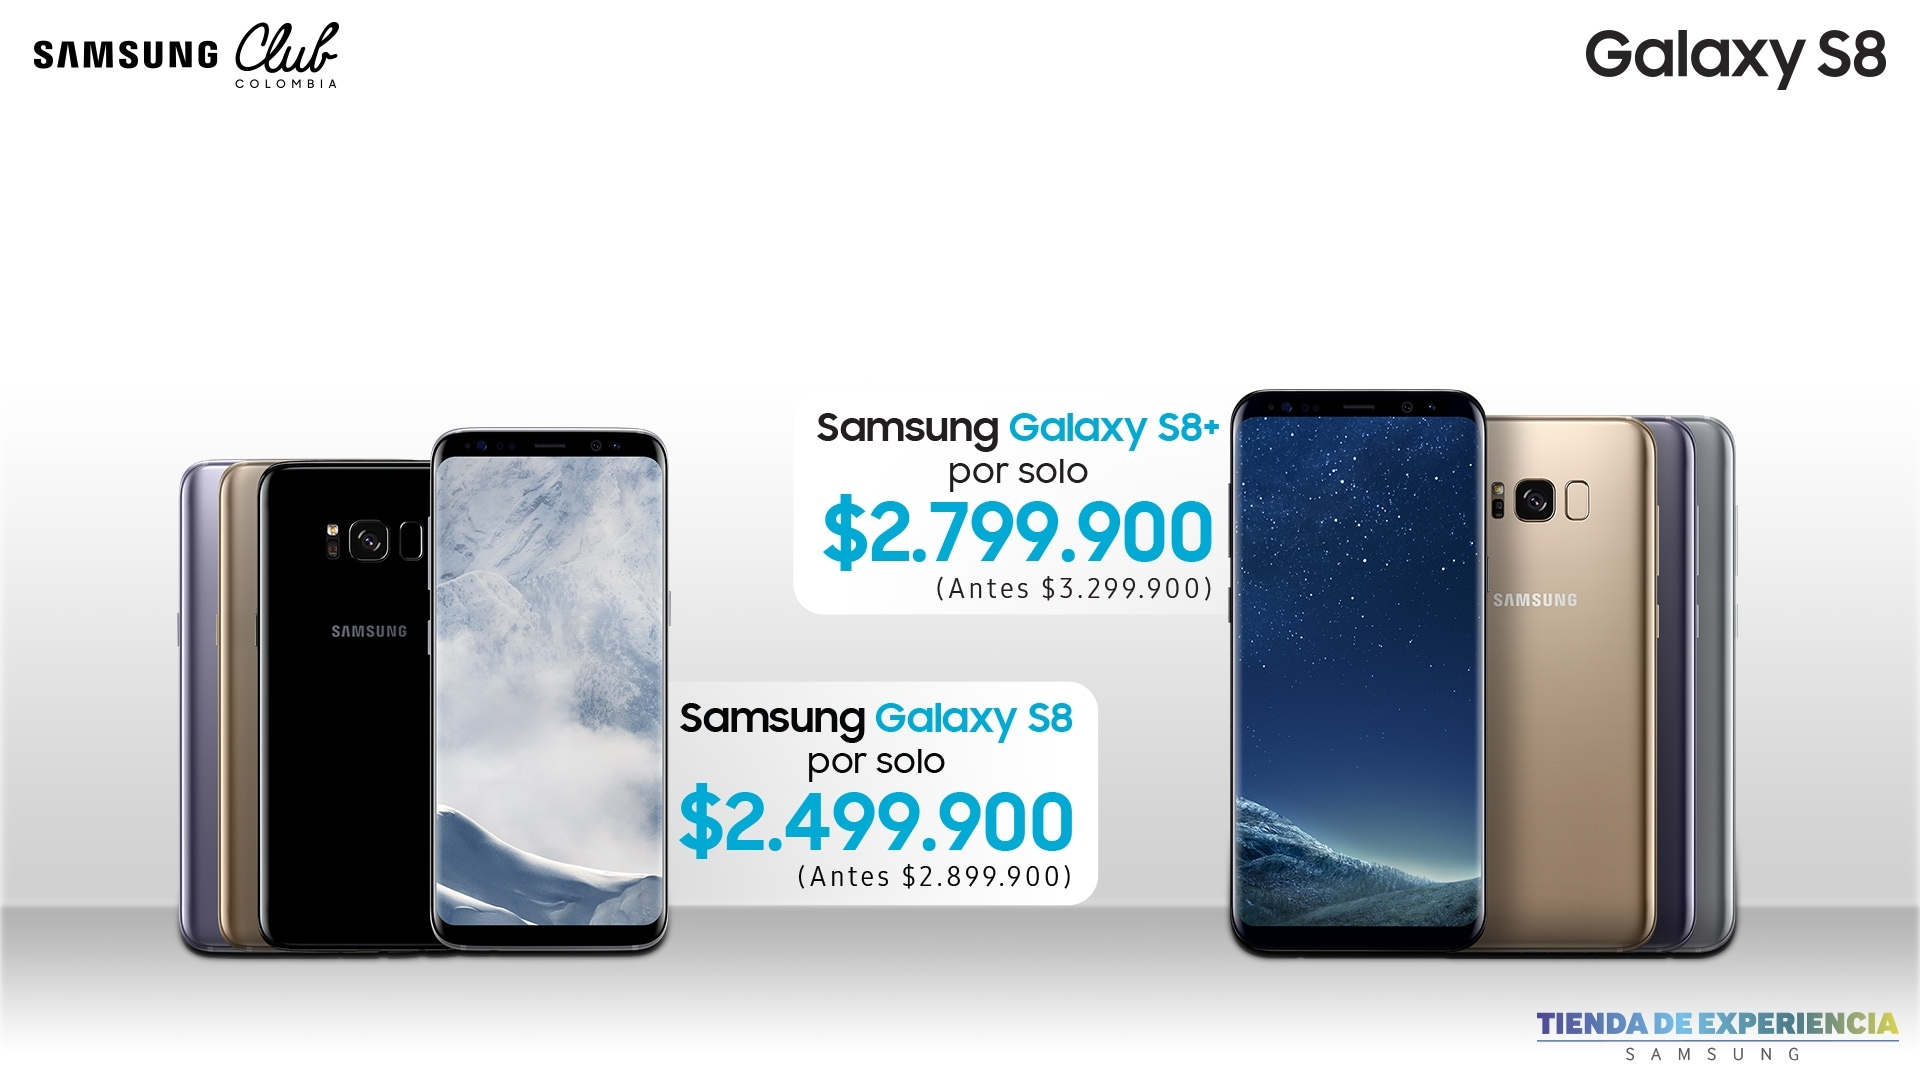 Galaxy S8 Samsung club